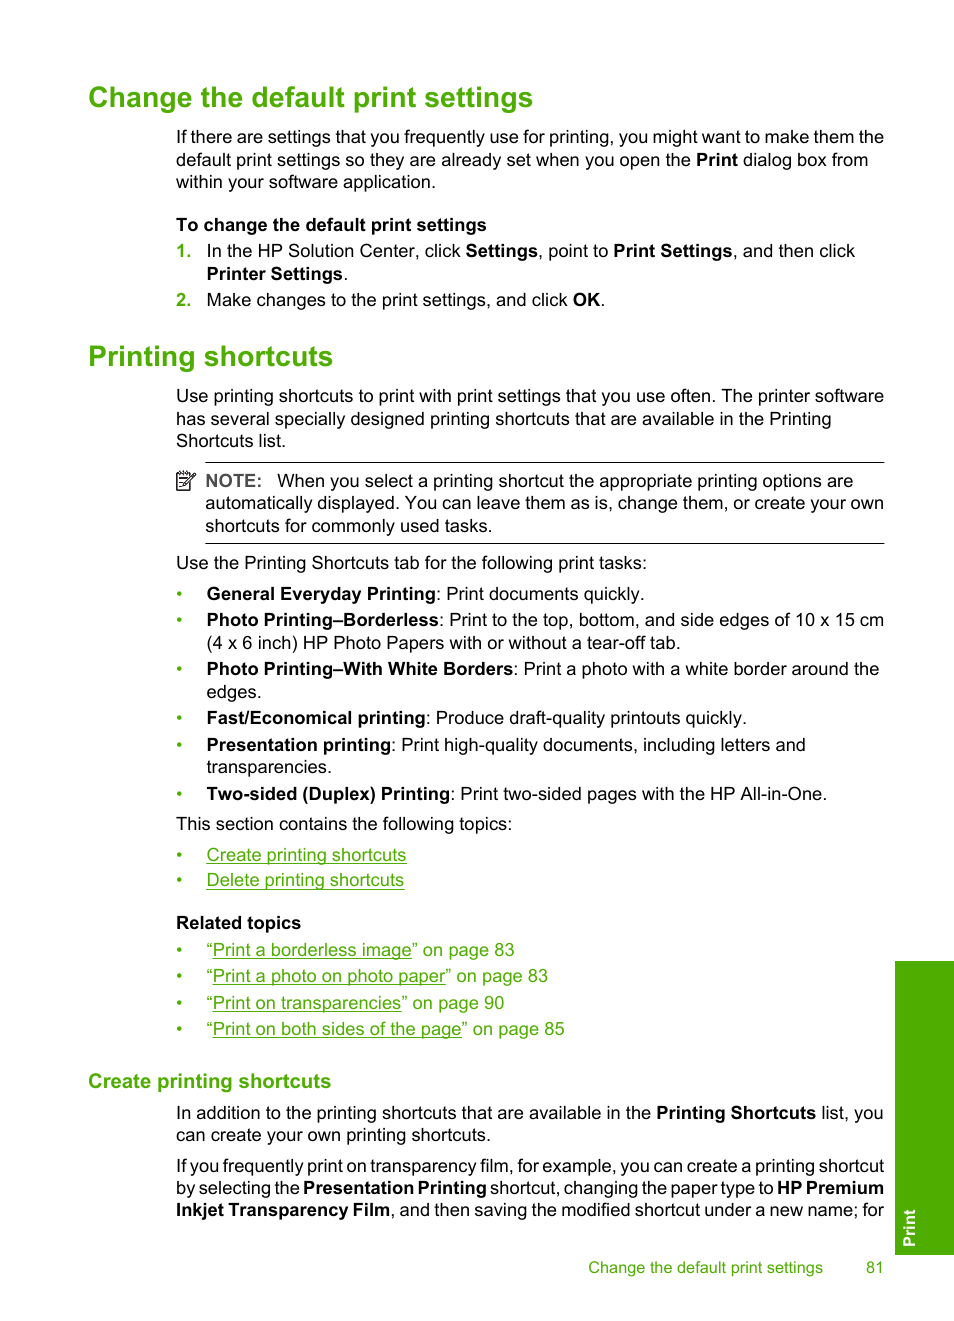 Change the default print settings, Printing shortcuts, Create printing  shortcuts | HP Photosmart C8180 All-in-One Printer User Manual | Page 82 /  235